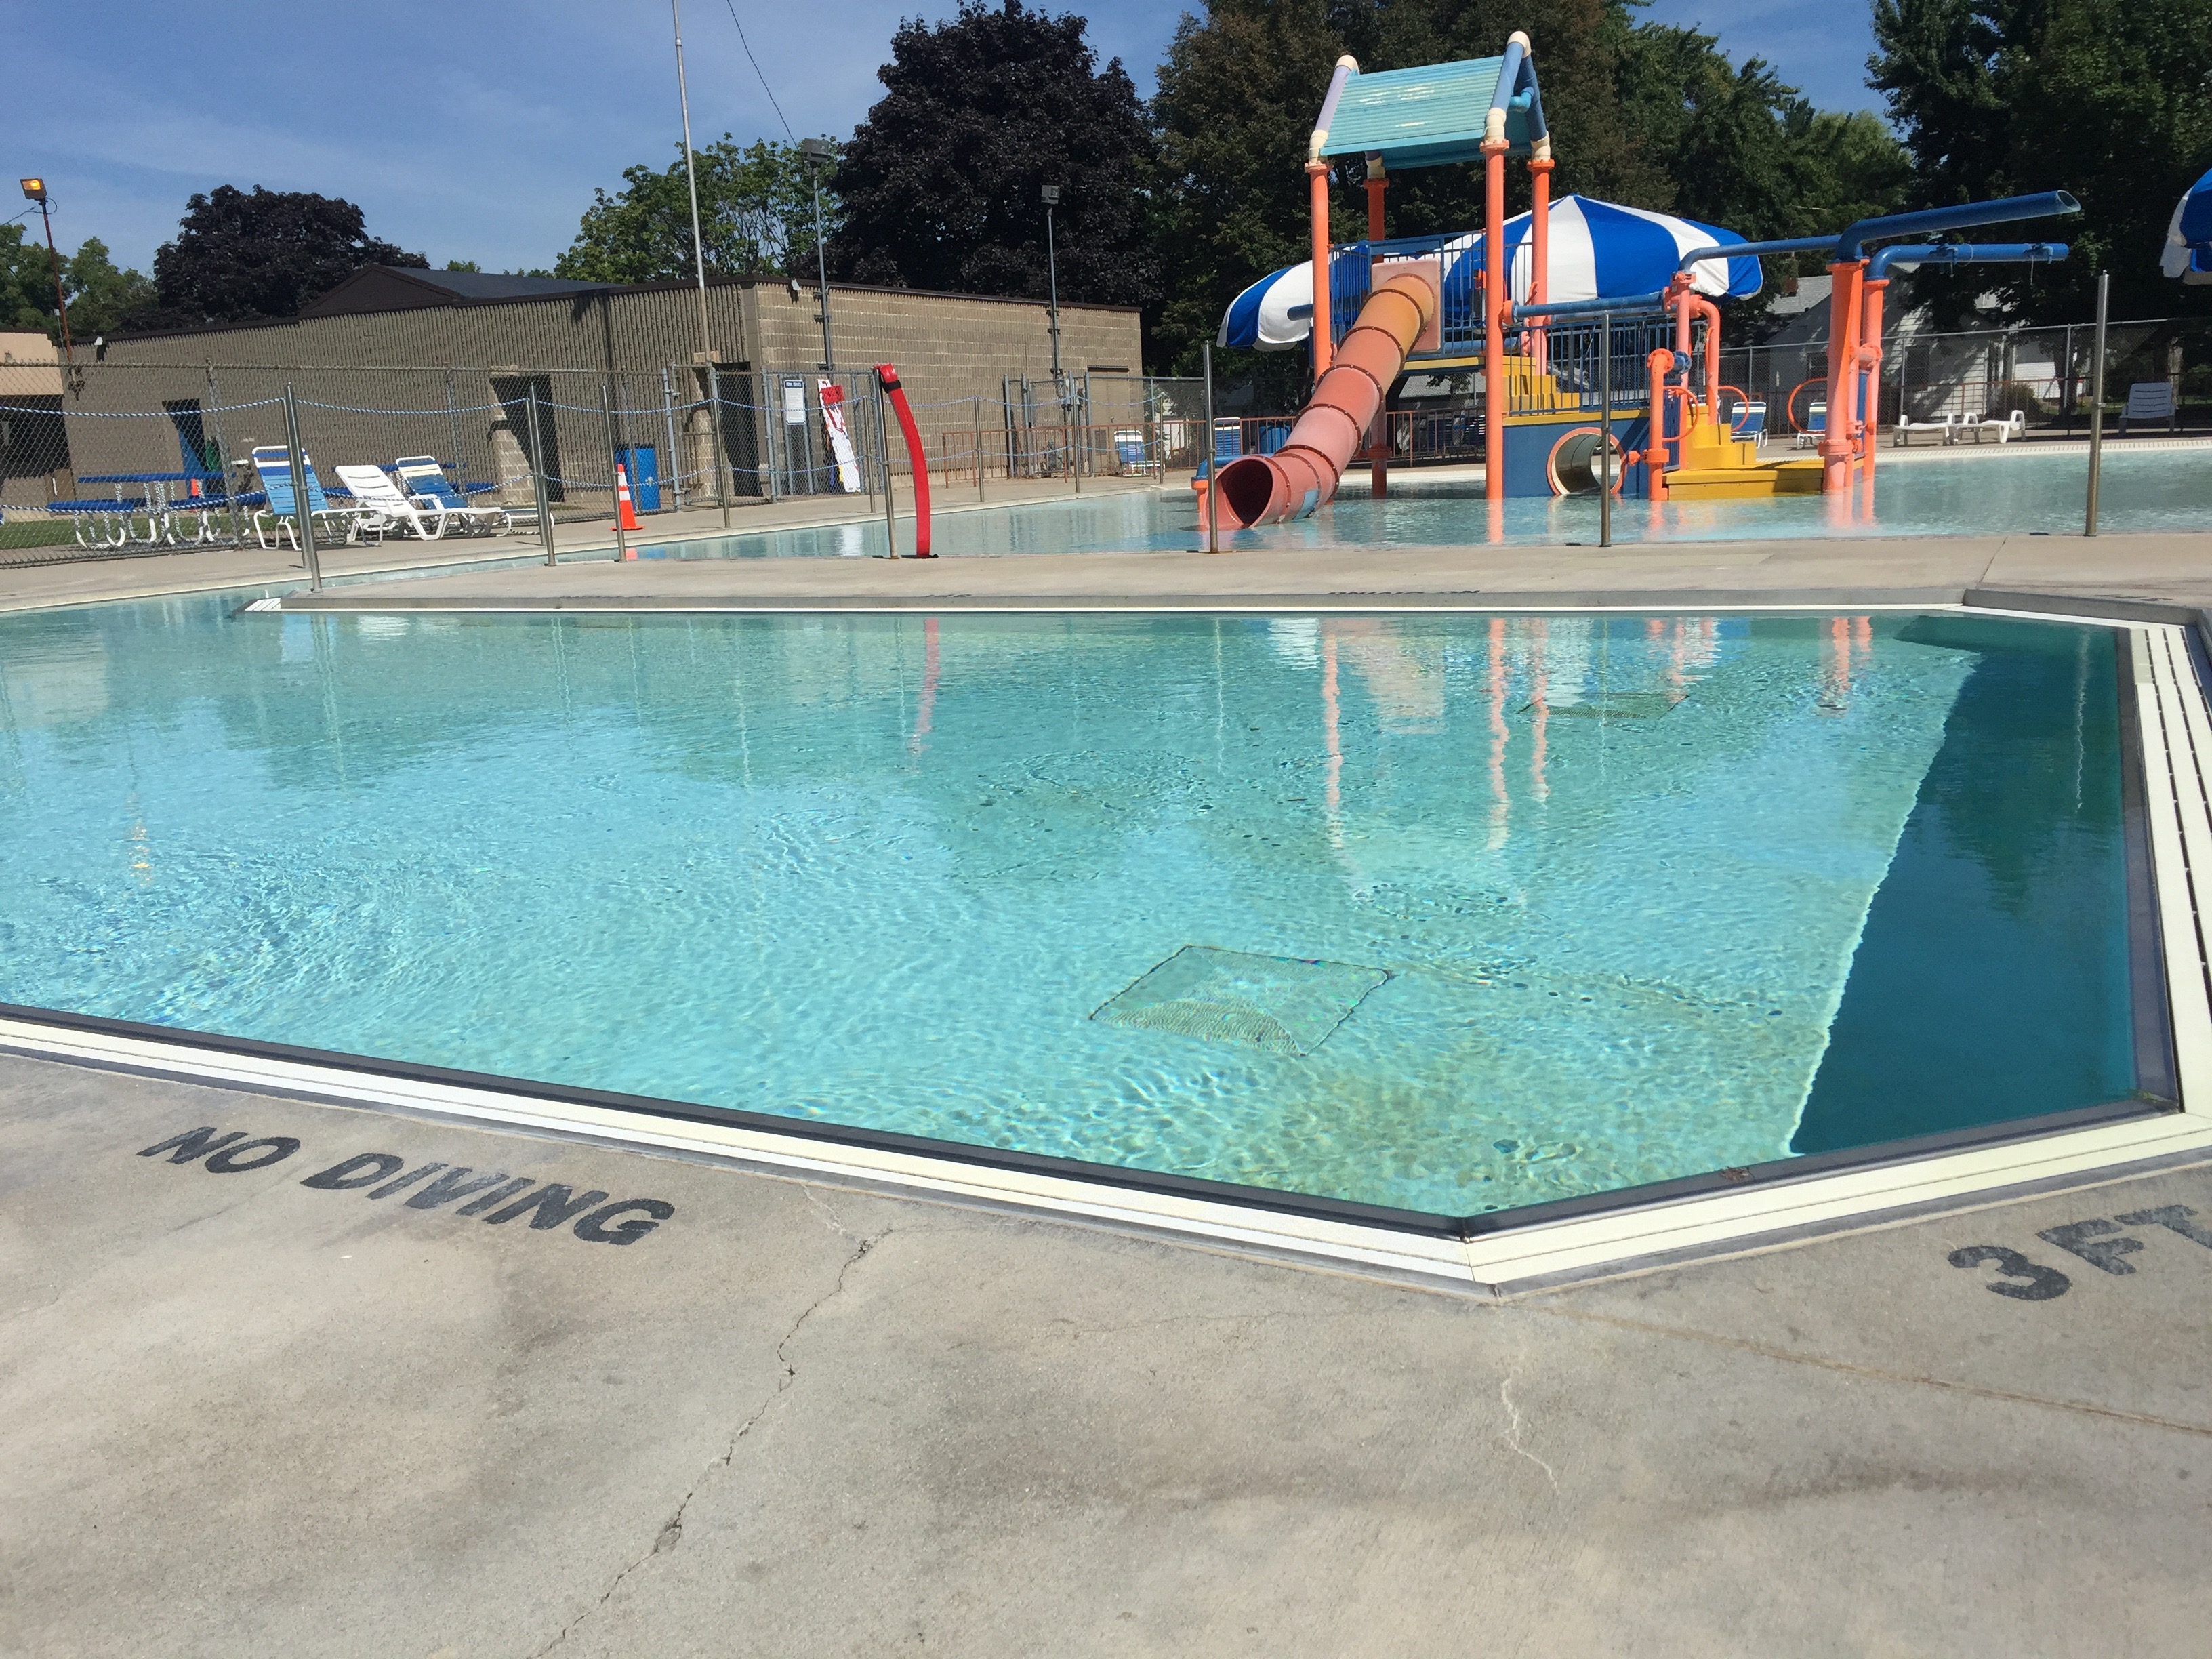 The Splash Pool in South Saint Paul, Minnesota in 2017. Repaired with Concrete Mender in 2001.